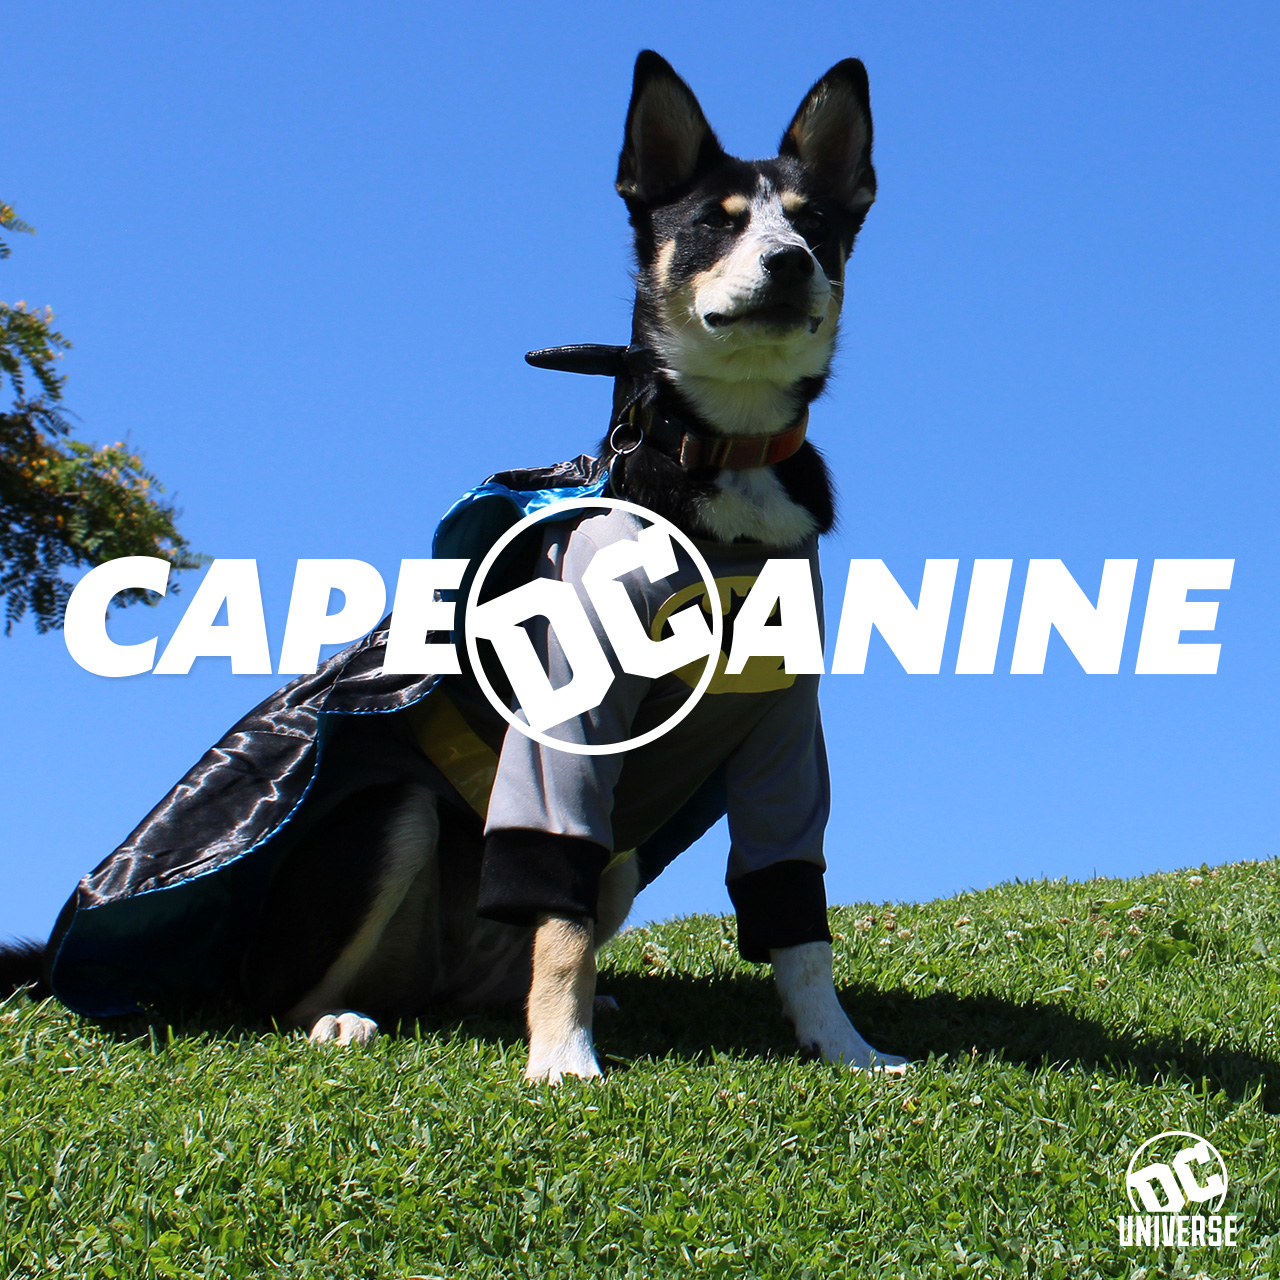 caped_canine.jpg